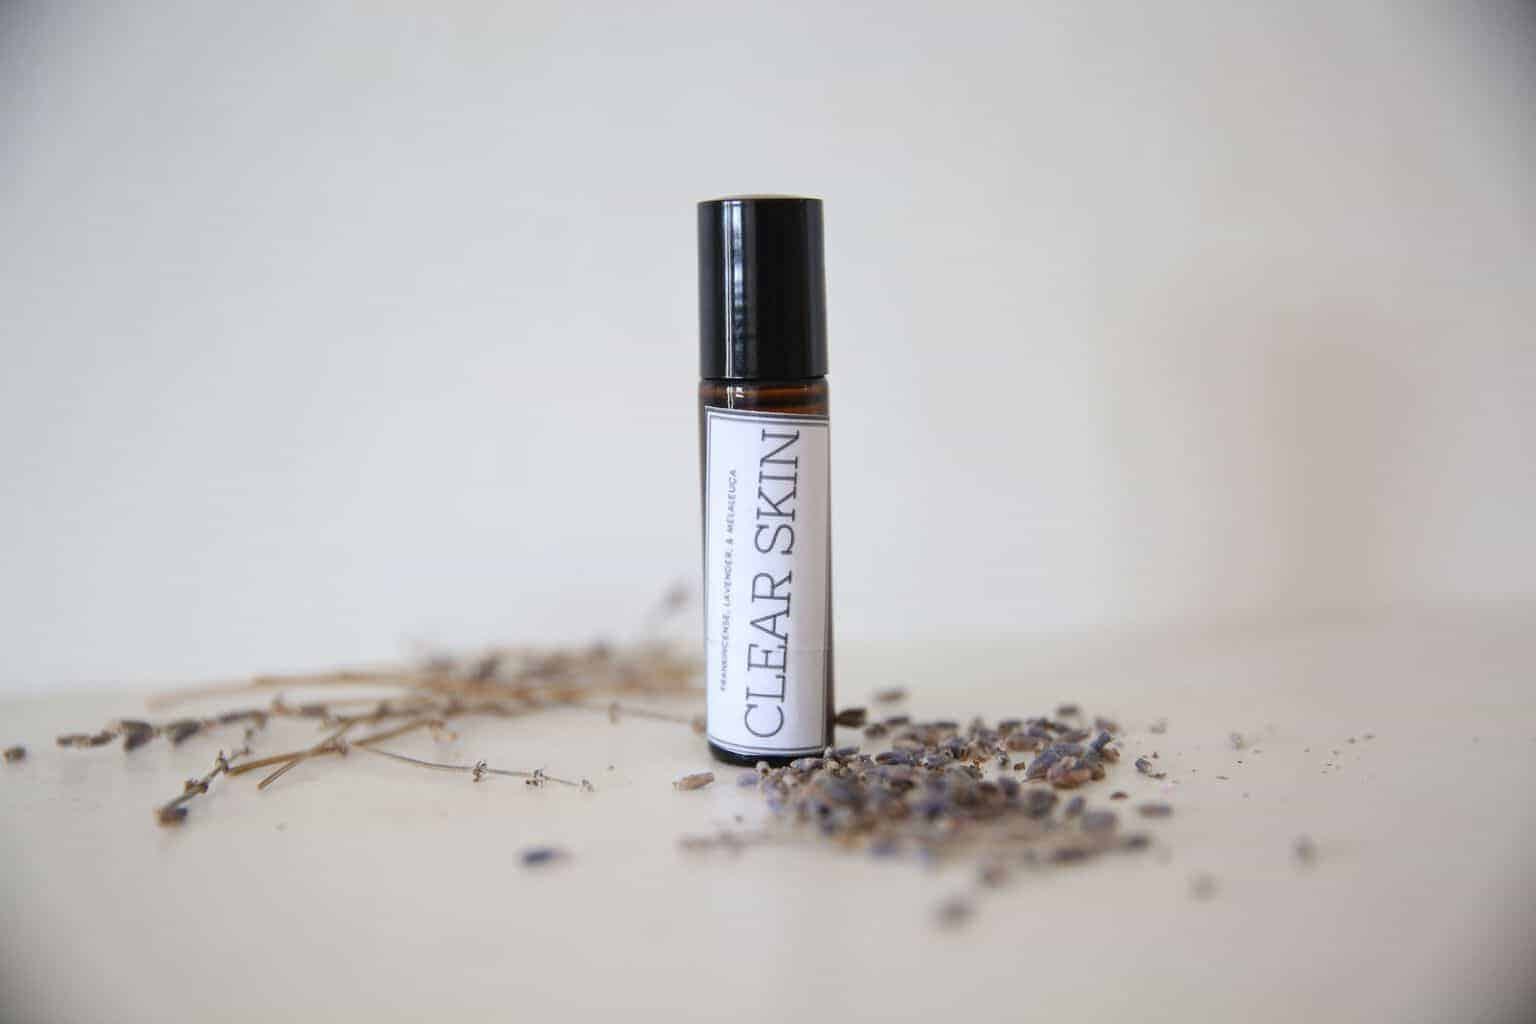 The best essential oil roller bottle blend for clear skin, skin imperfections, acne, blemishes, and rashes.